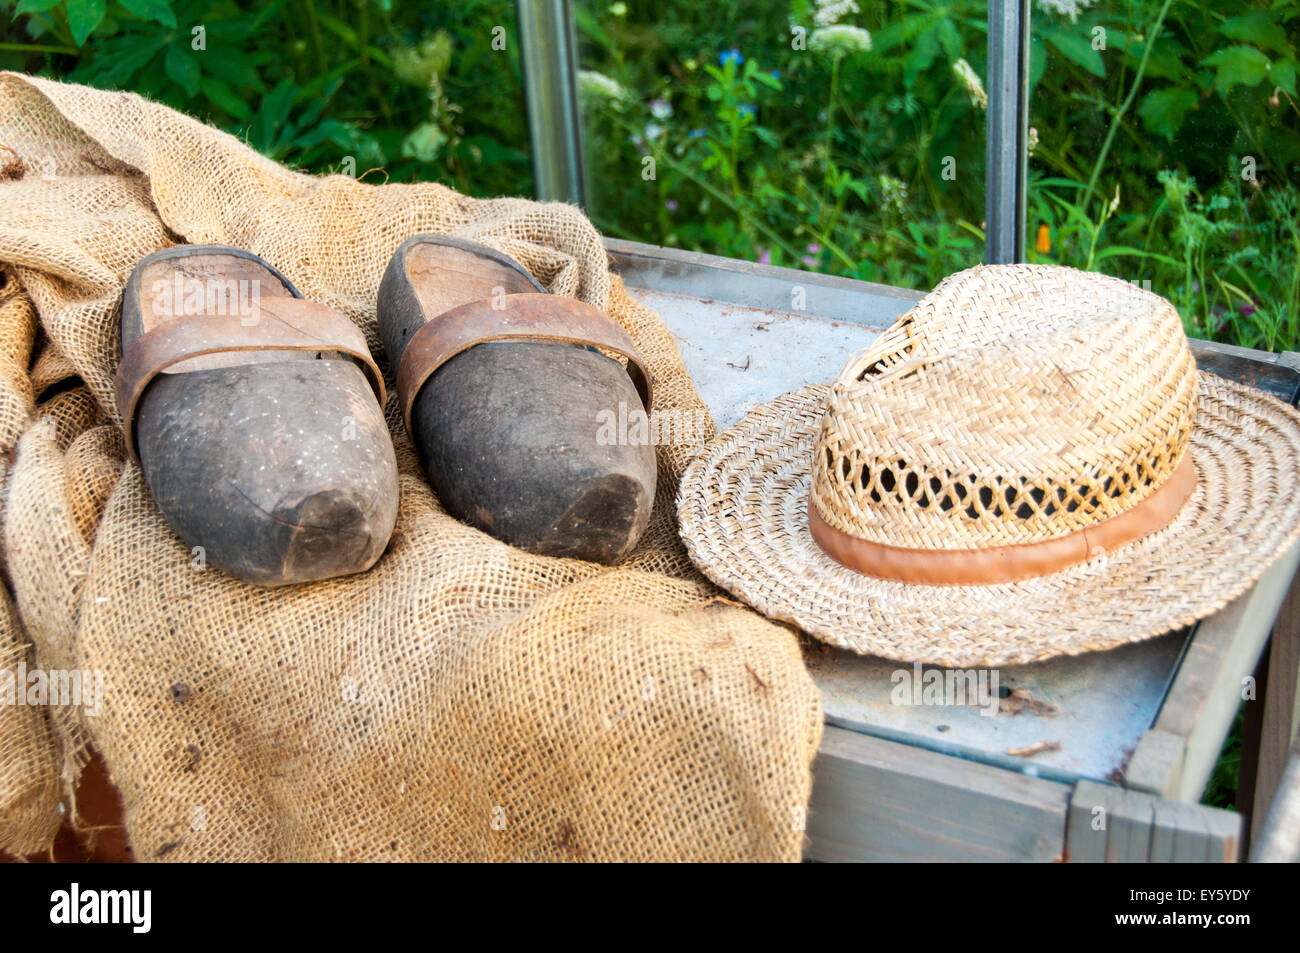 Hat and garden clogs on hessian - Stock Image